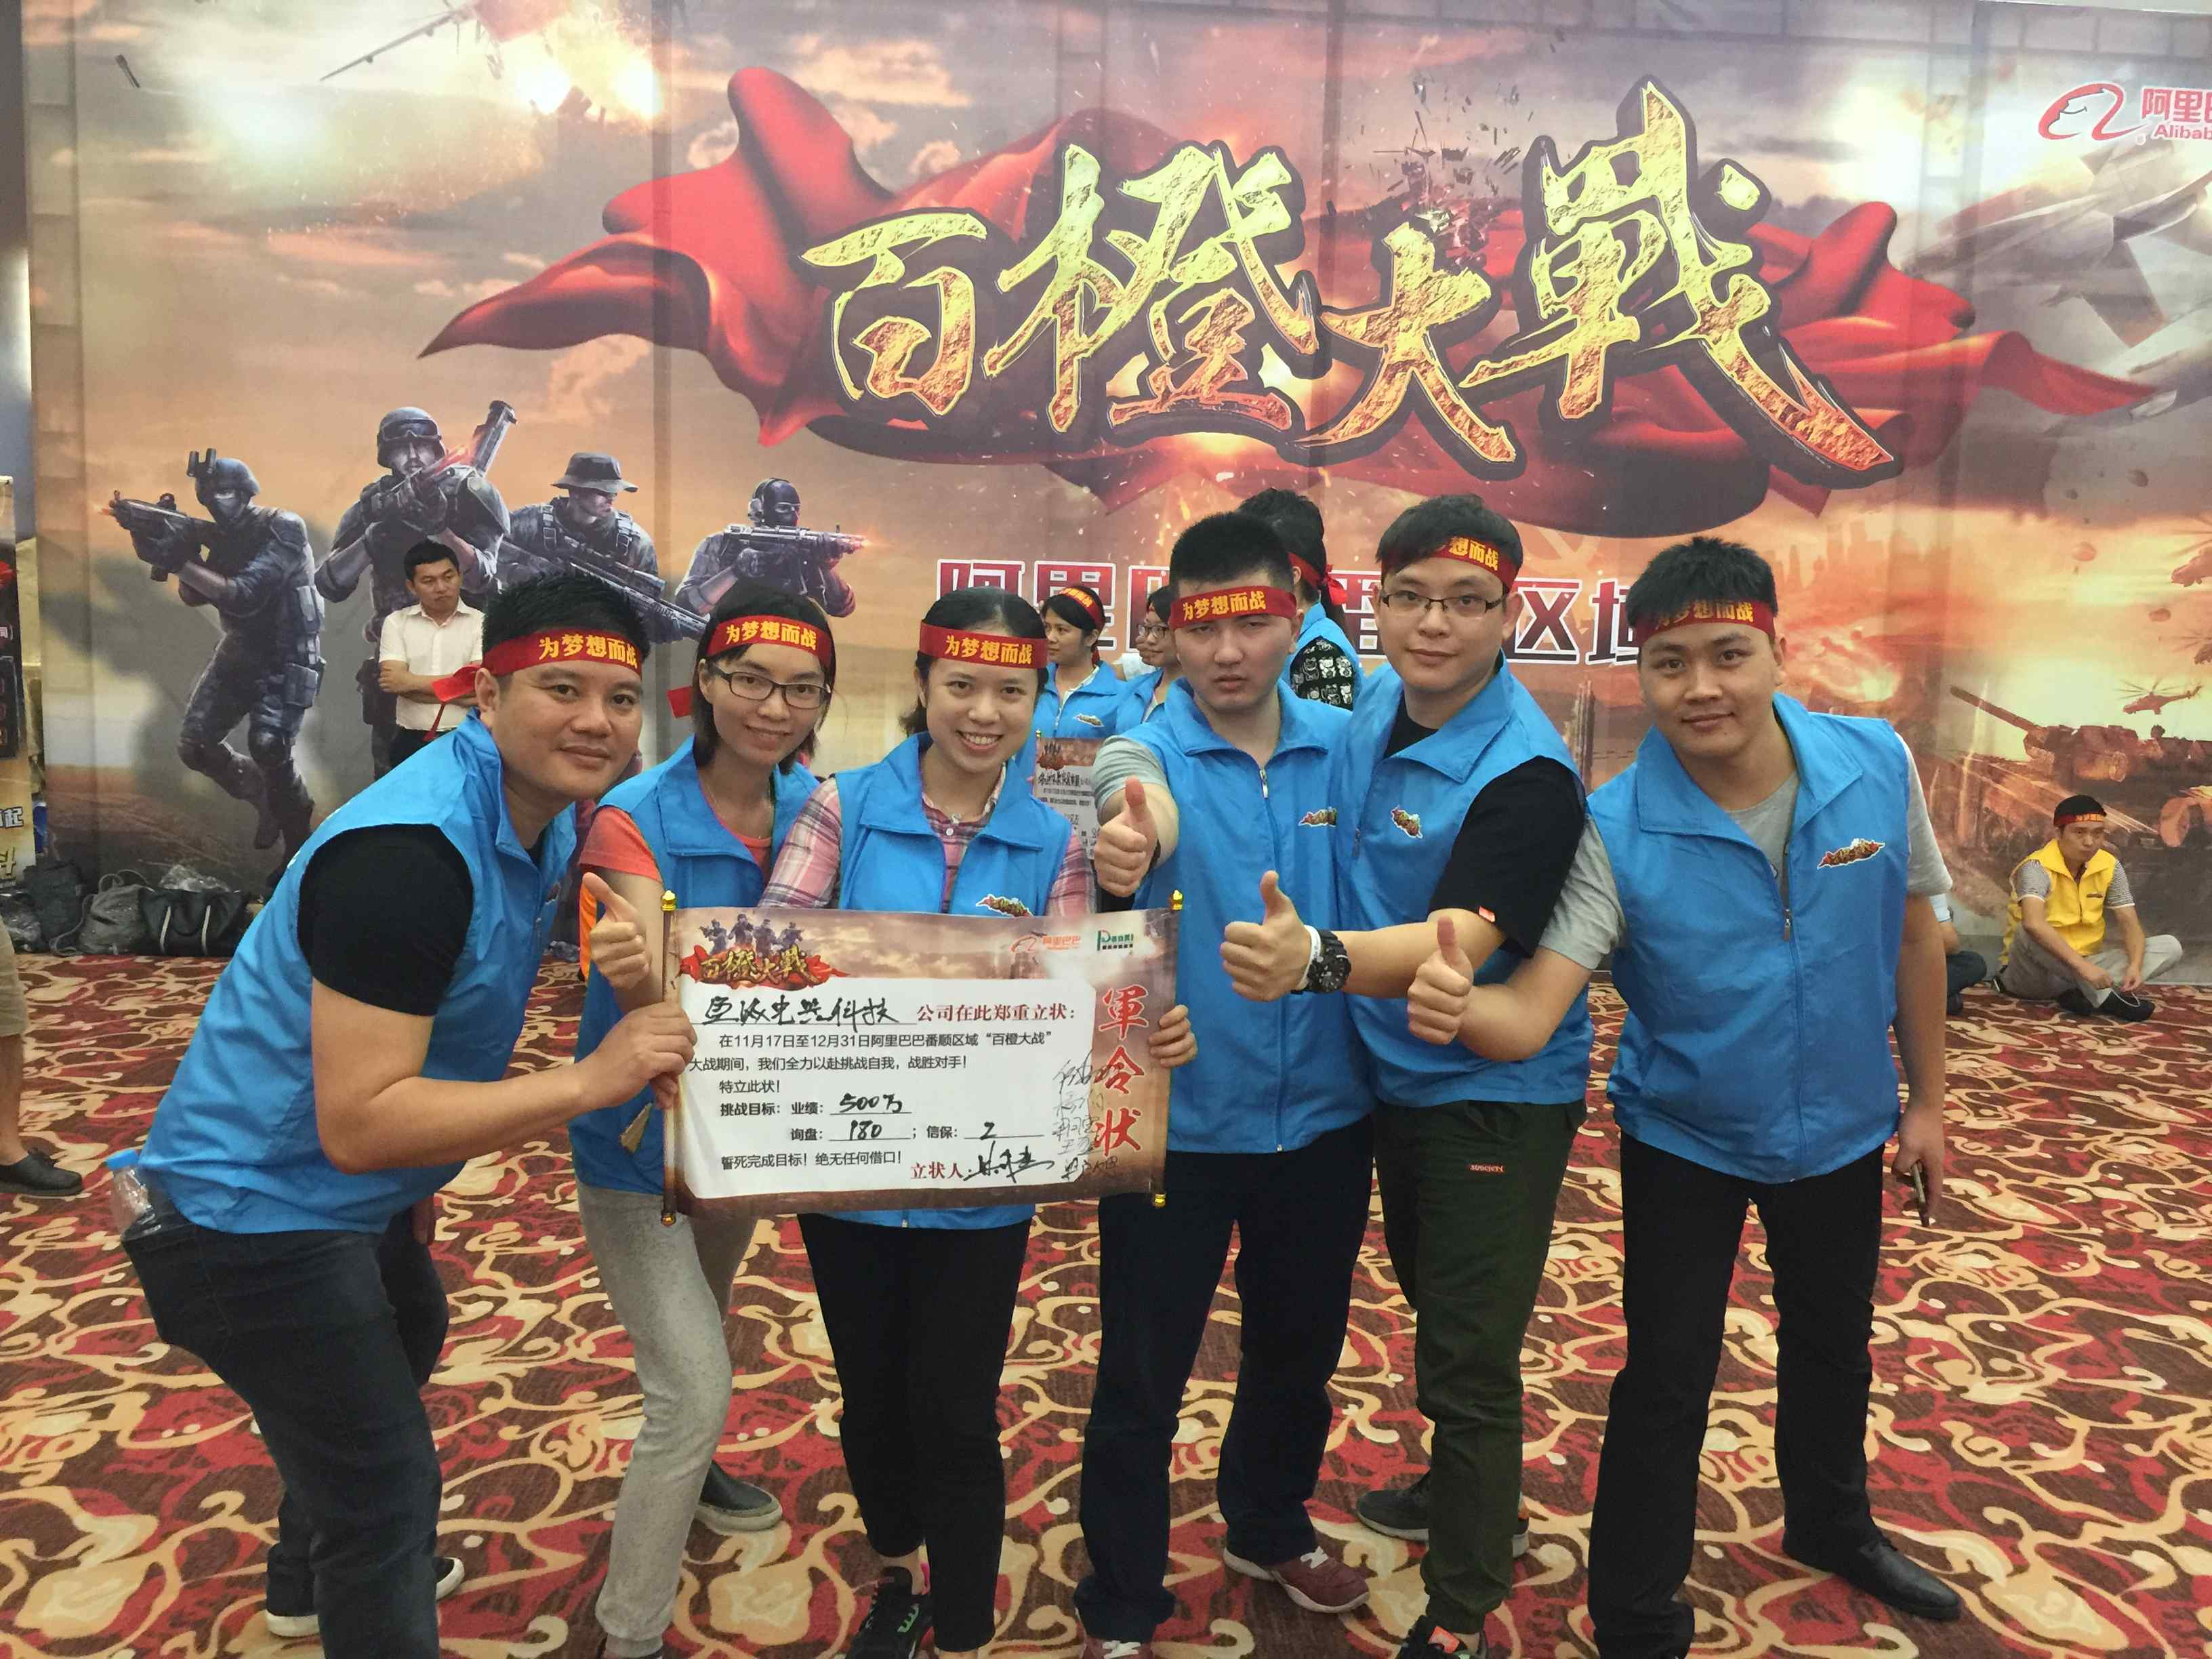 news-Winpai participated in the sales competitions held by Alibaba, sales goal 5 million-WINPAI-img